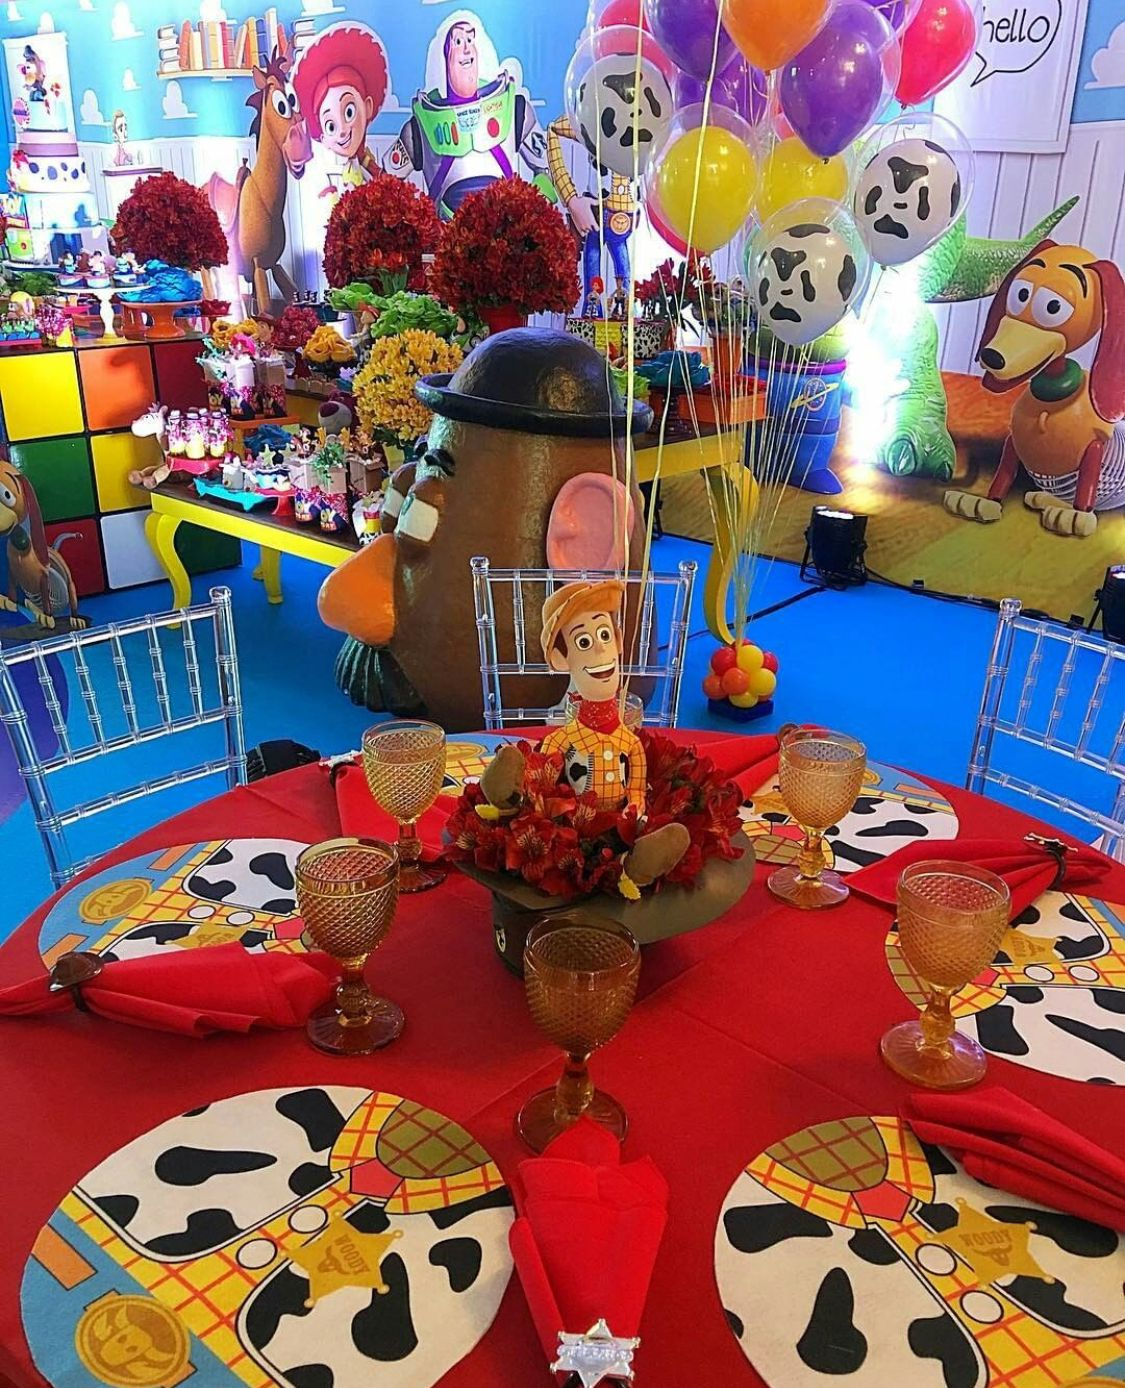 Toy Story Woody Woody Table Decor Toy Story Woody Table Decor Woody Decorations Toy Story Woody Centerpieces Woody Centerpieces